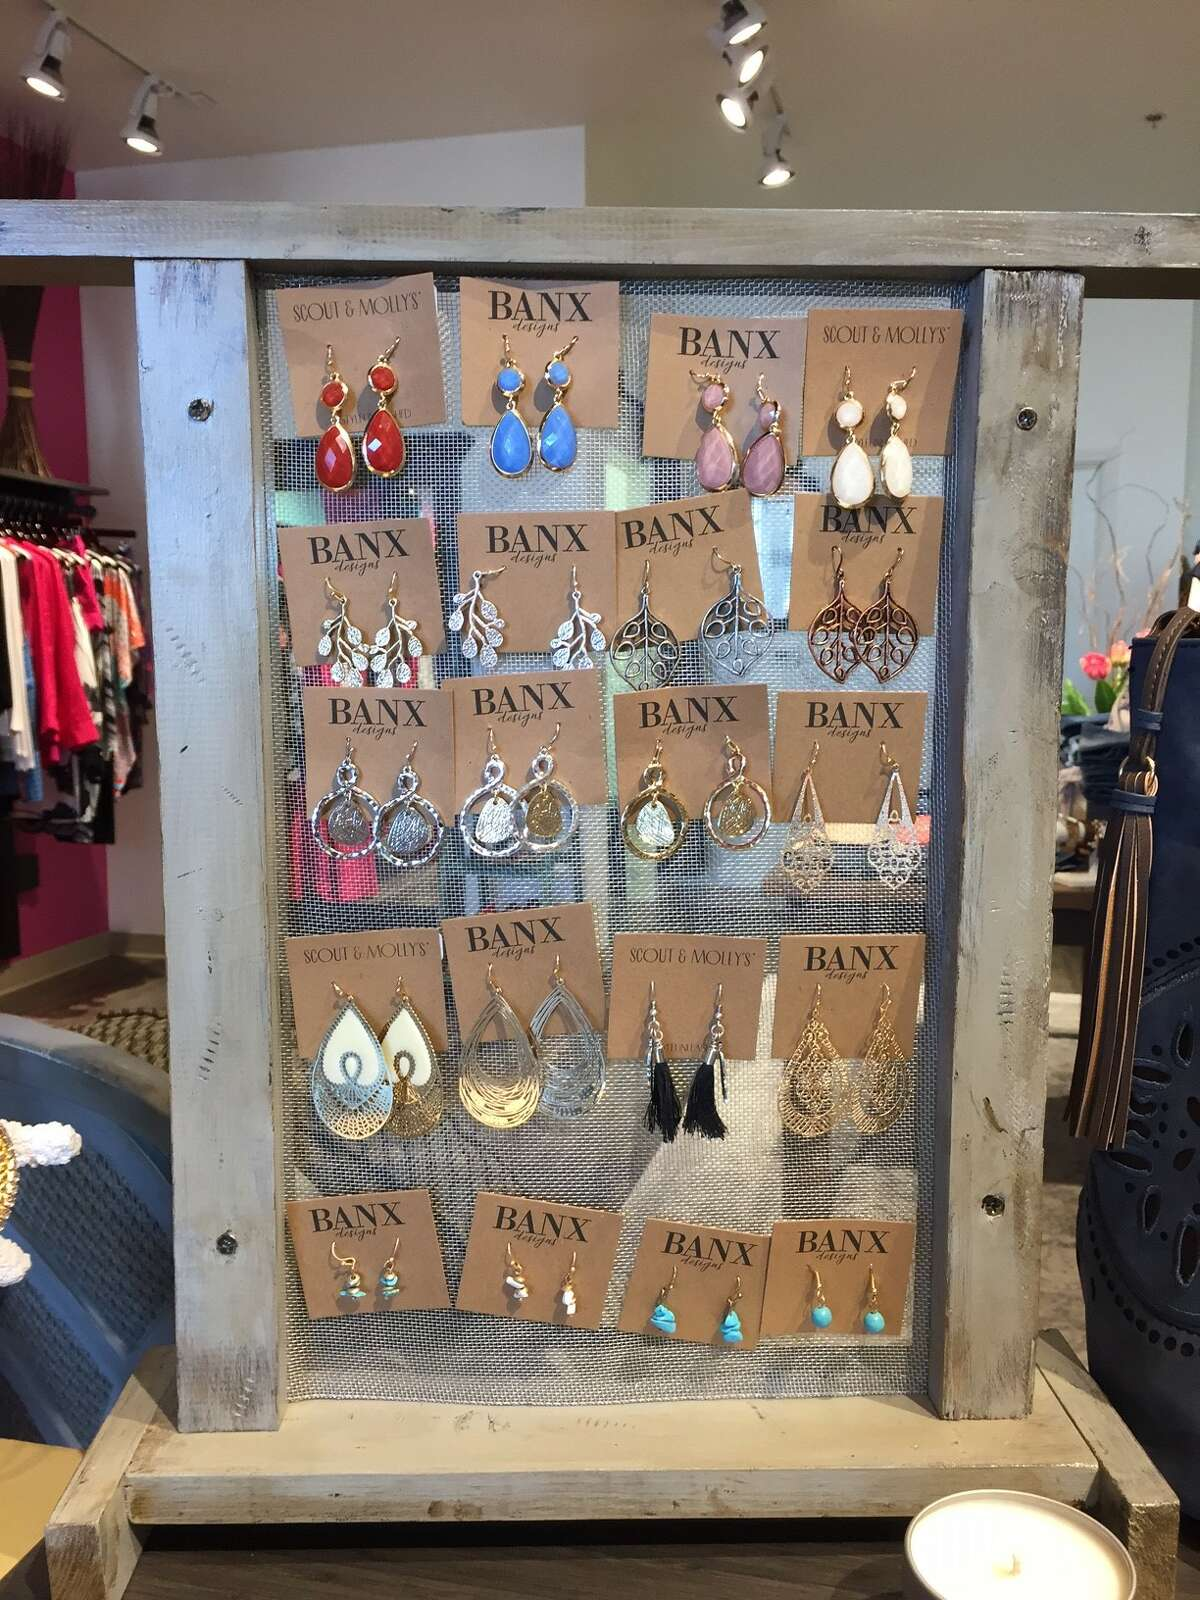 WHAT YOU'LL FIND: Scout & Molly's earrings, from $16 to $36.